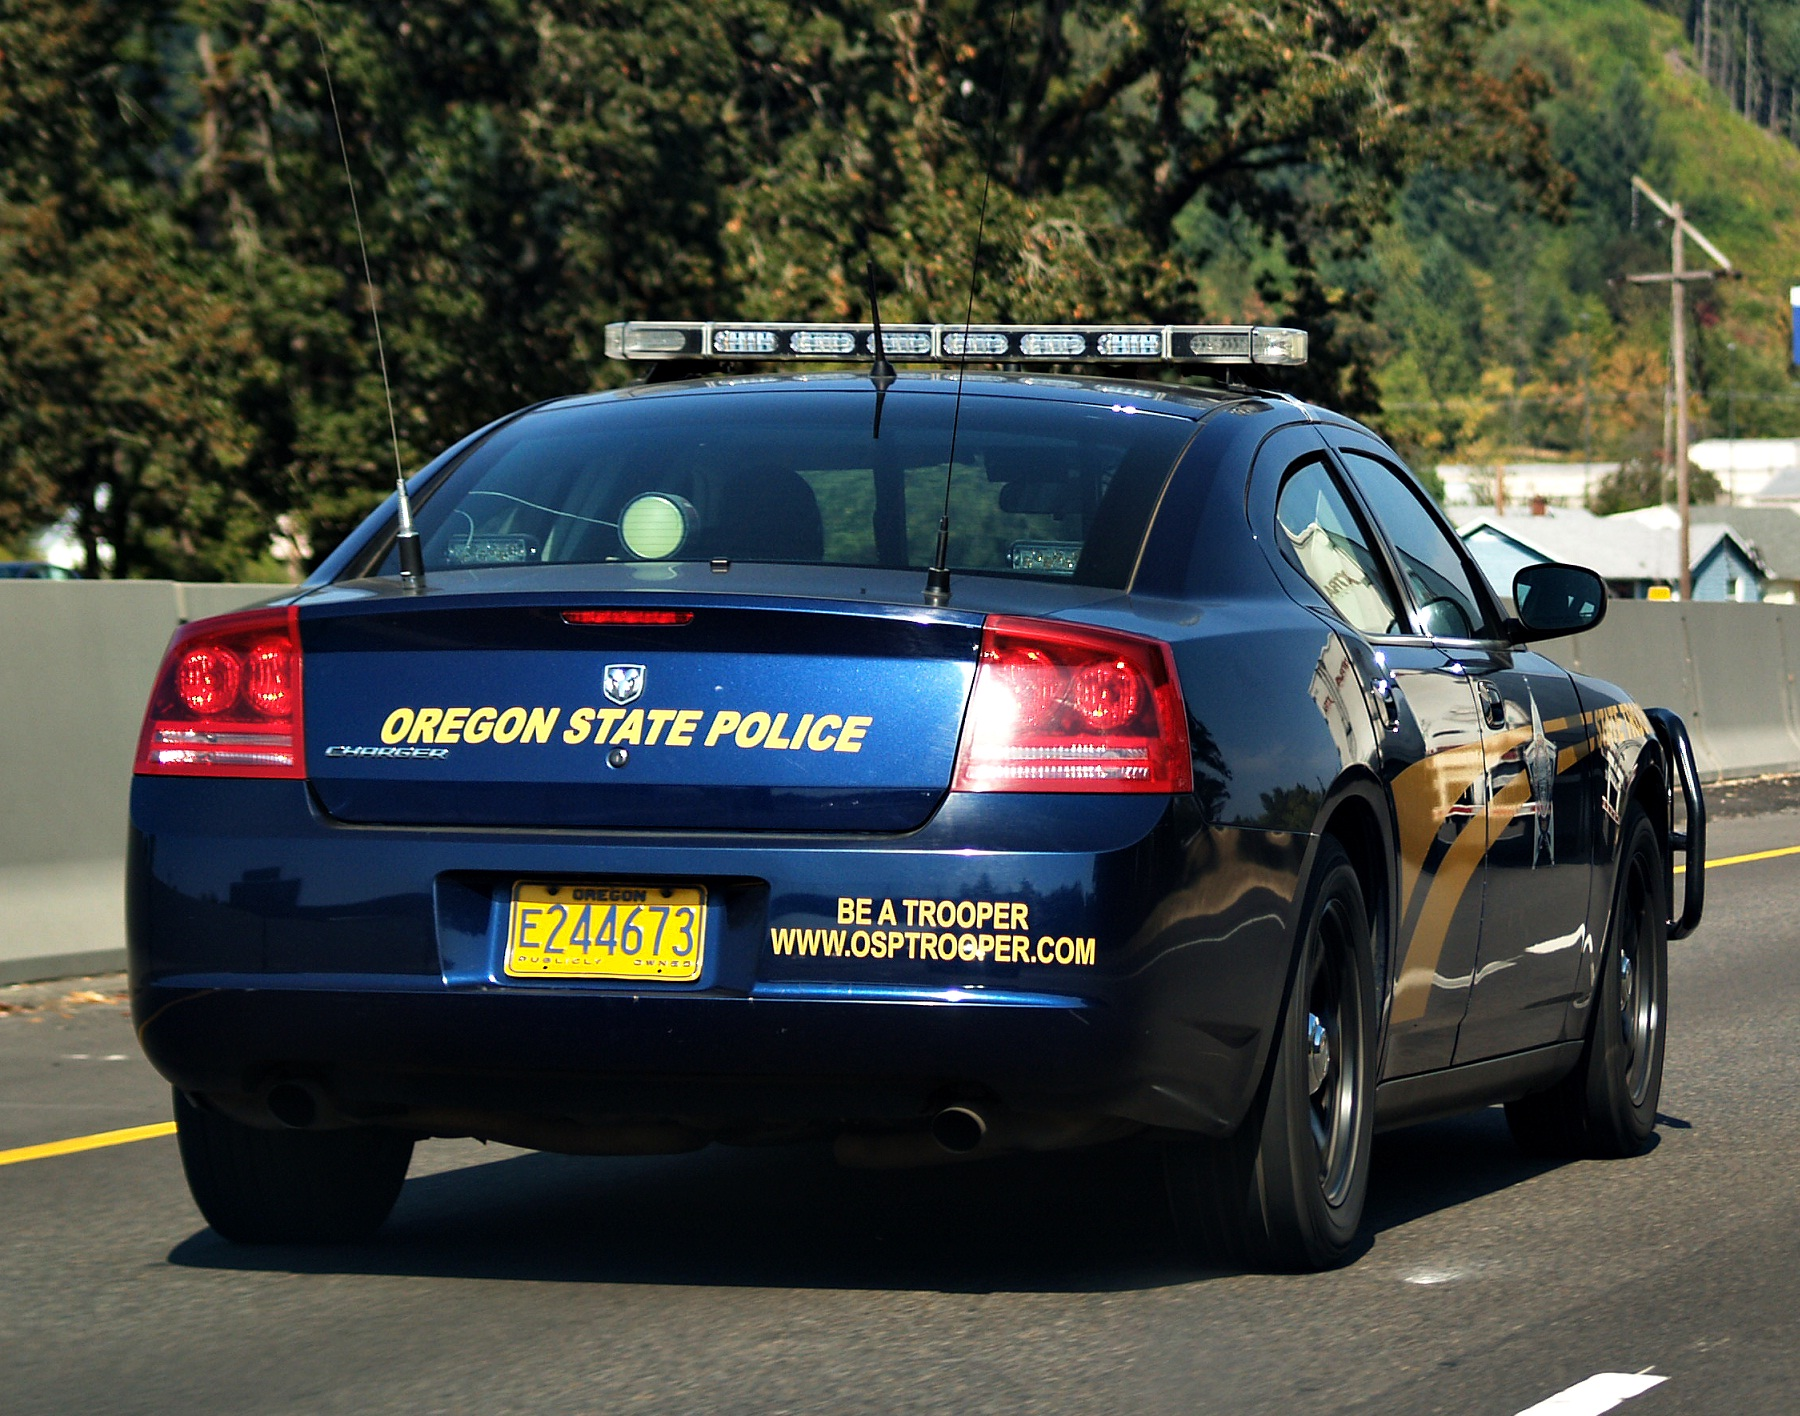 Oregon State Police Car - Finicum